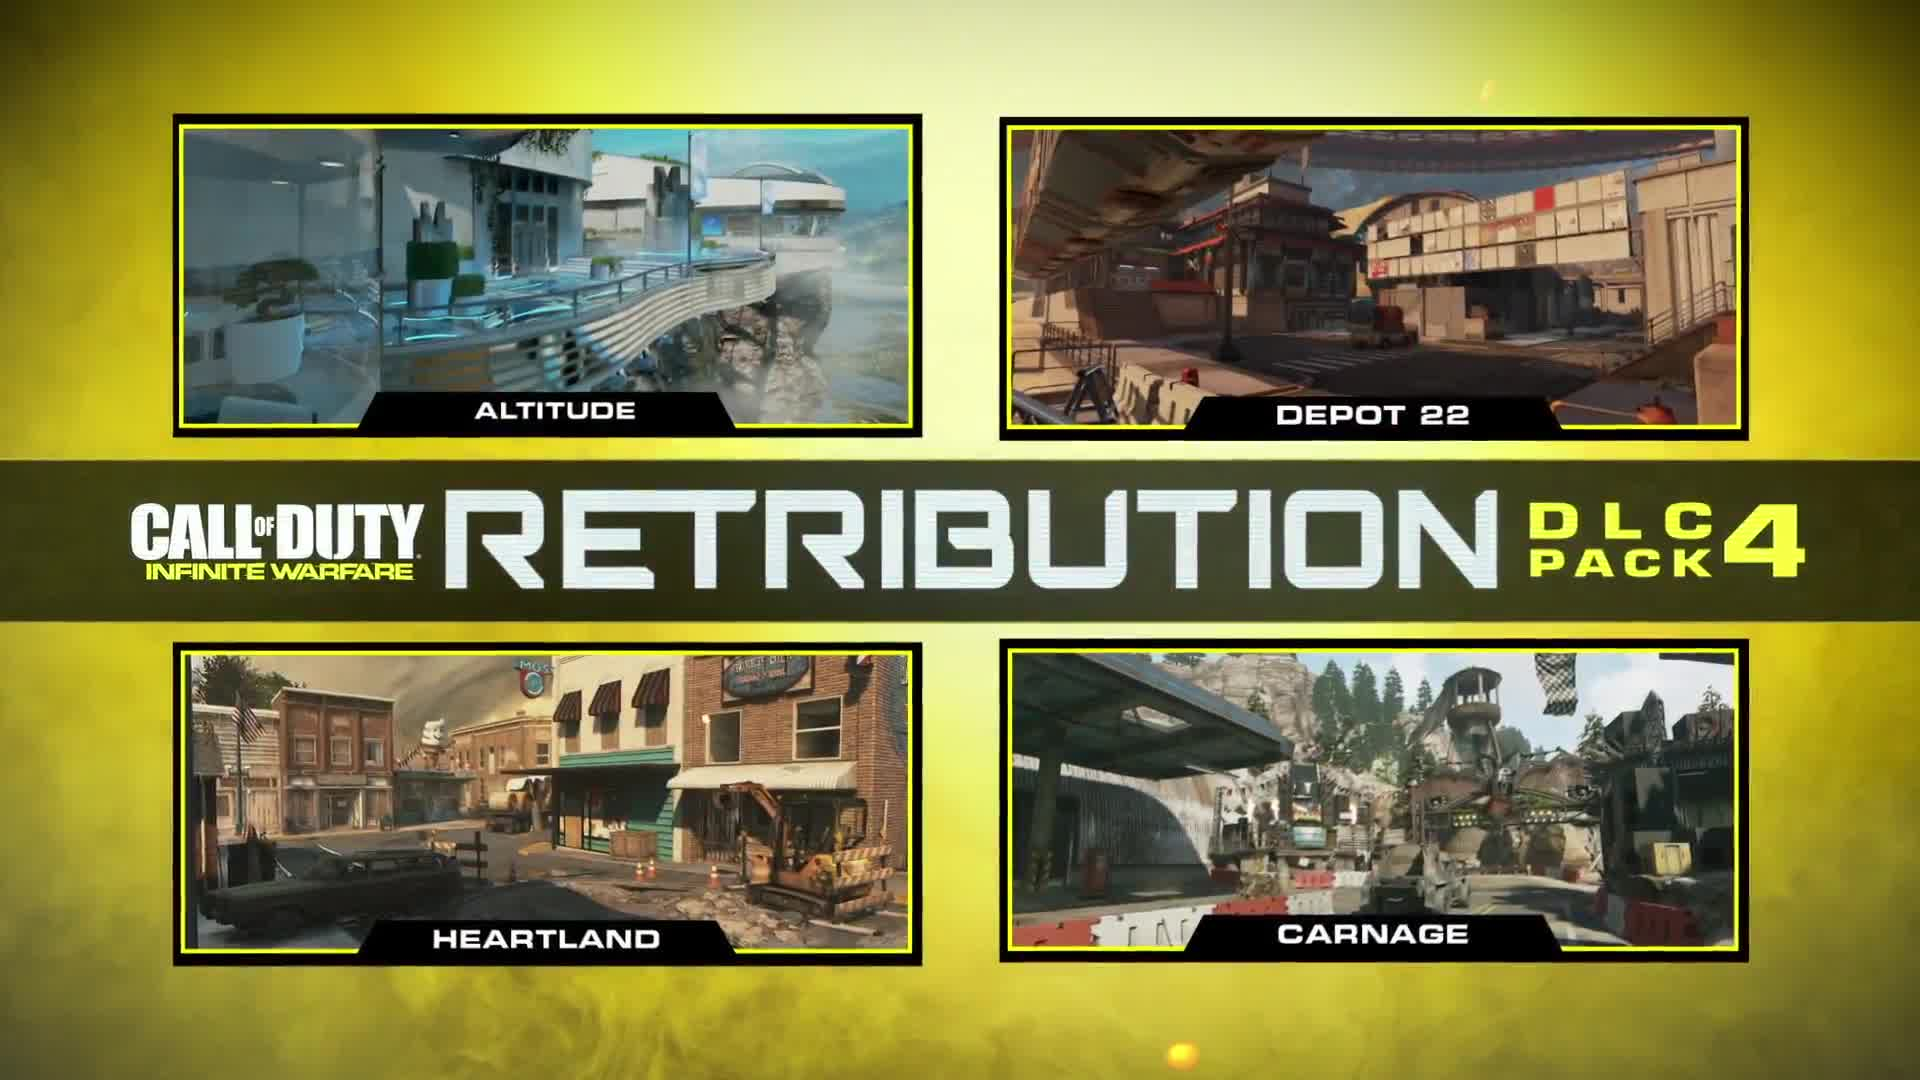 Call of Duty Infinite Warfare - Retribution DLC trailer